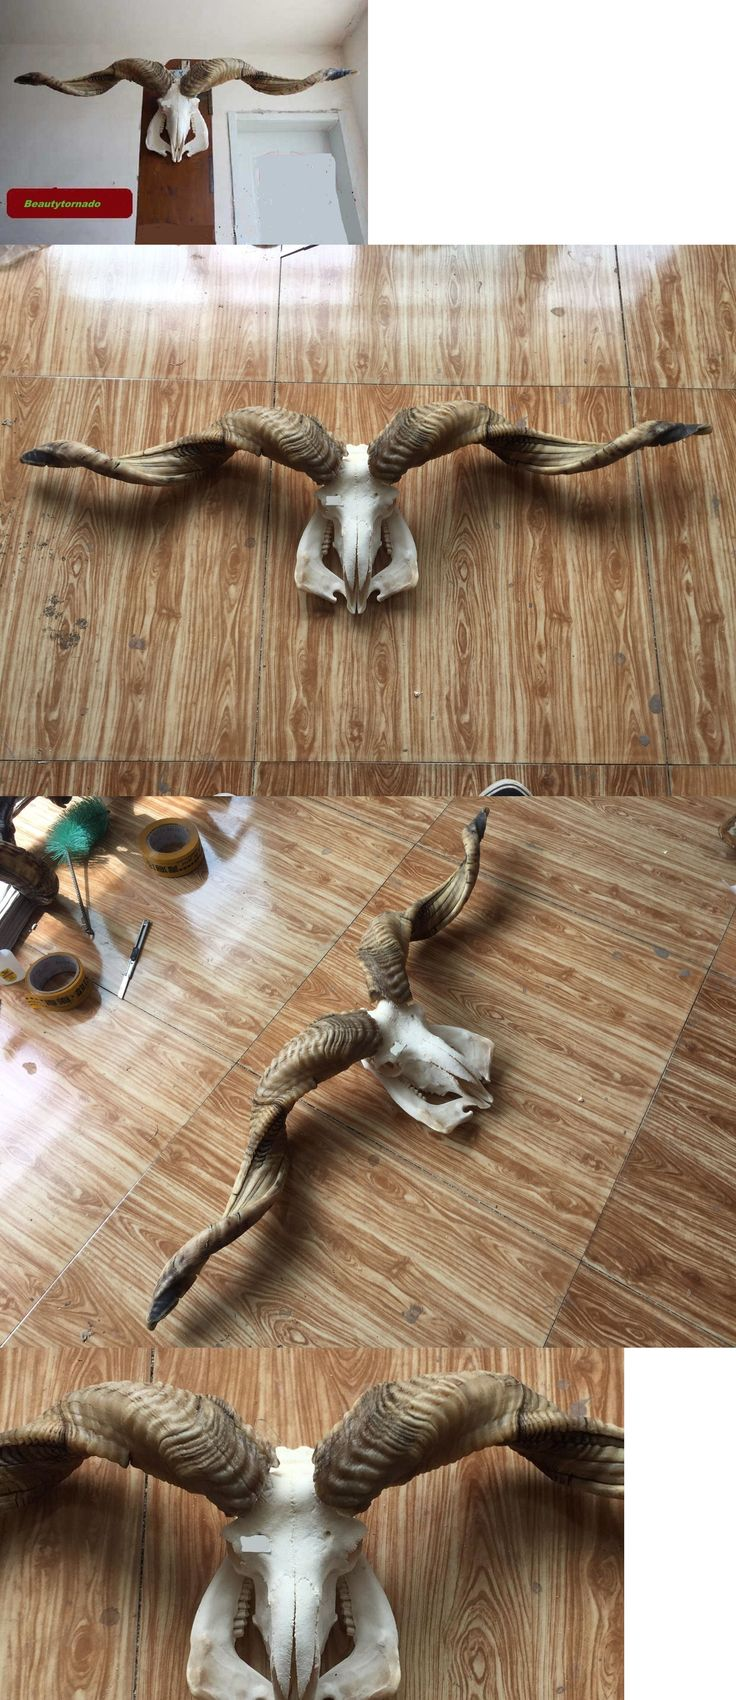 Other Taxidermy 22702: 42 107Cm Huge Taxidermy Skull Long Horns Sheep Skull Head Mutton Goat Tibet 566 -> BUY IT NOW ONLY: $189 on eBay!